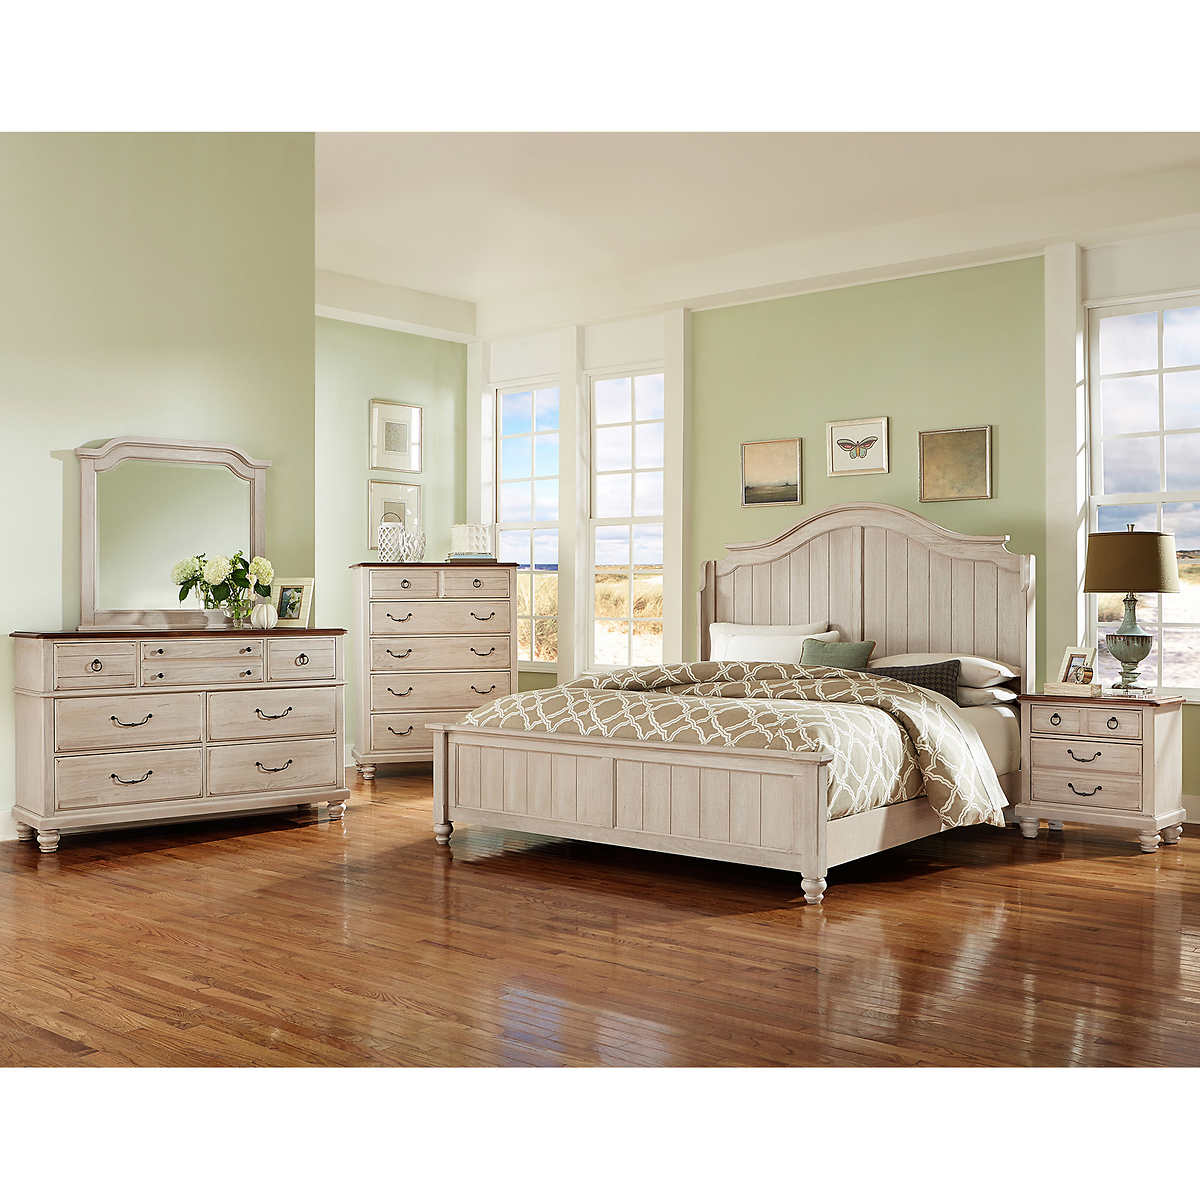 queen bedroom sets  costco - savannah piece queen bedroom set